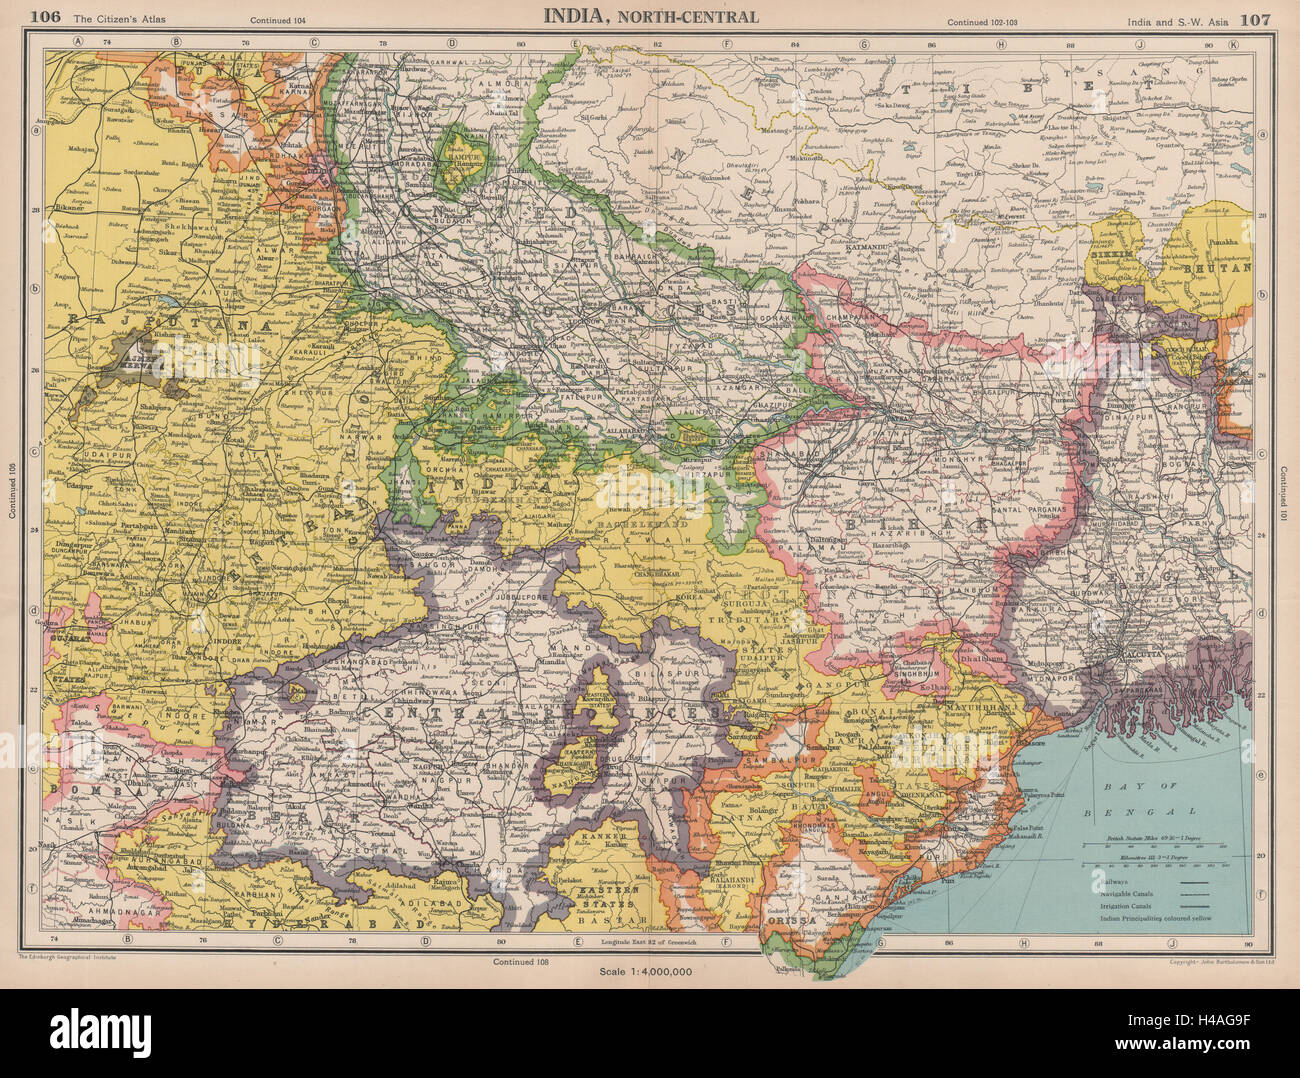 India north east nepal bihar bengal central provinces bartholomew india north east nepal bihar bengal central provinces bartholomew 1944 map gumiabroncs Image collections